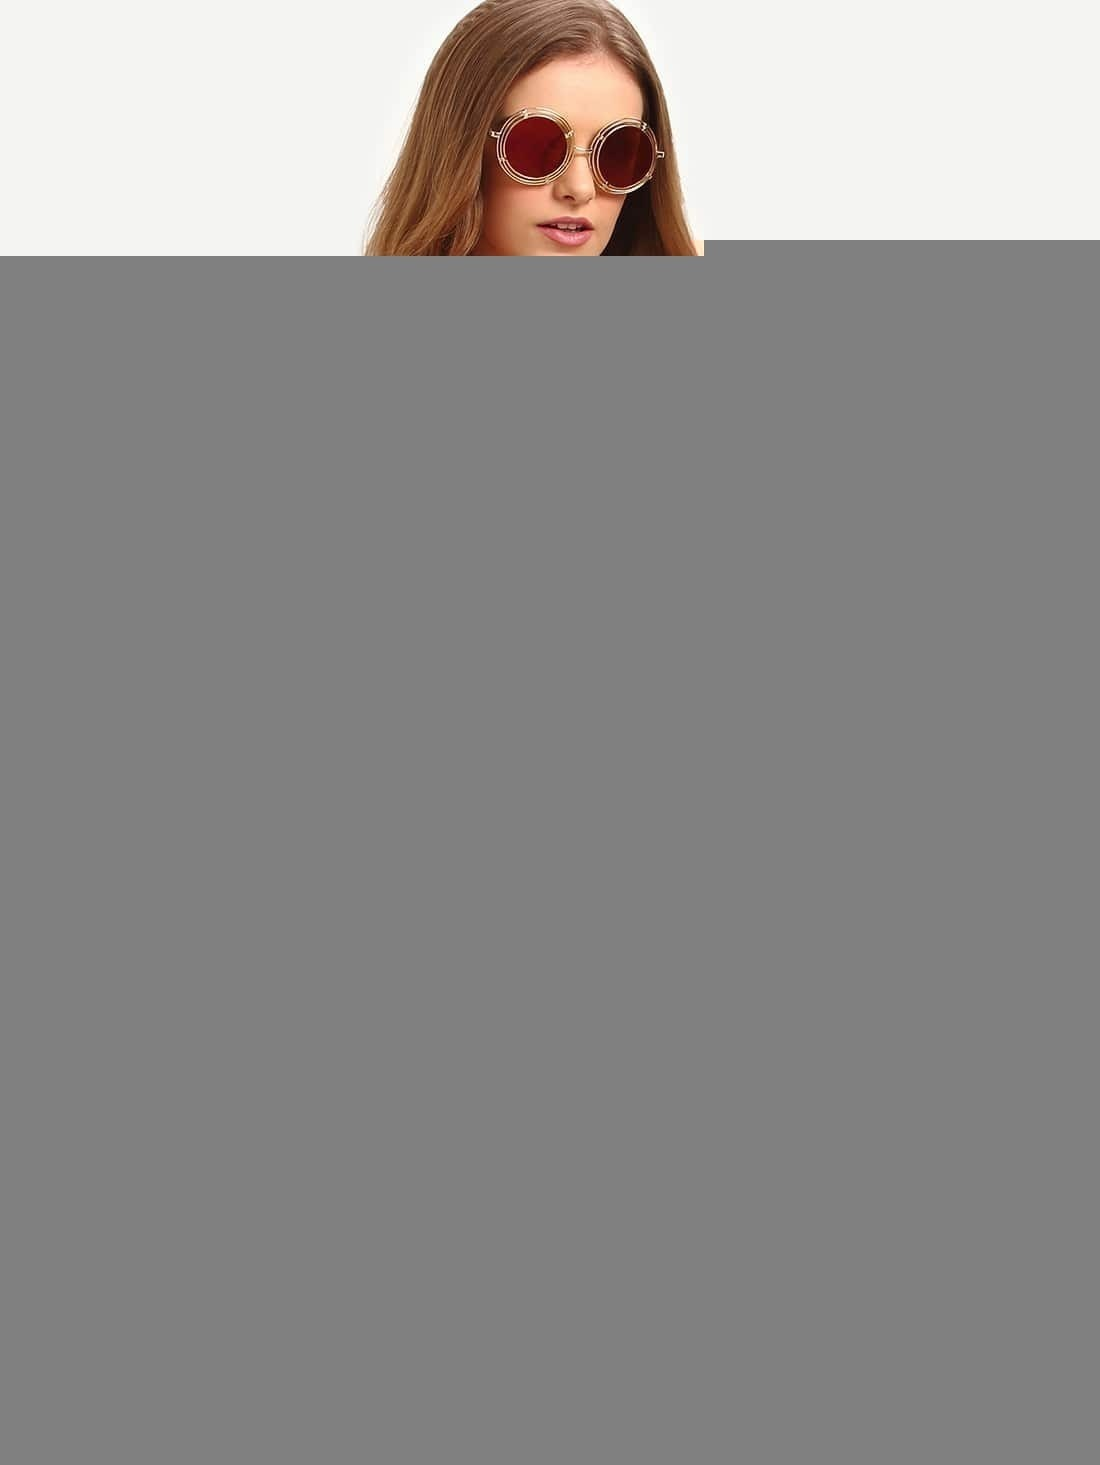 Yükle (1100x1465)Red White Striped Sleeveless Dress EmmaCloth-Women Fast  Fashion Online Mobile SiteRed White Striped Sleeveless Dress  EmmaCloth-Women Fast ... 17cc5c200